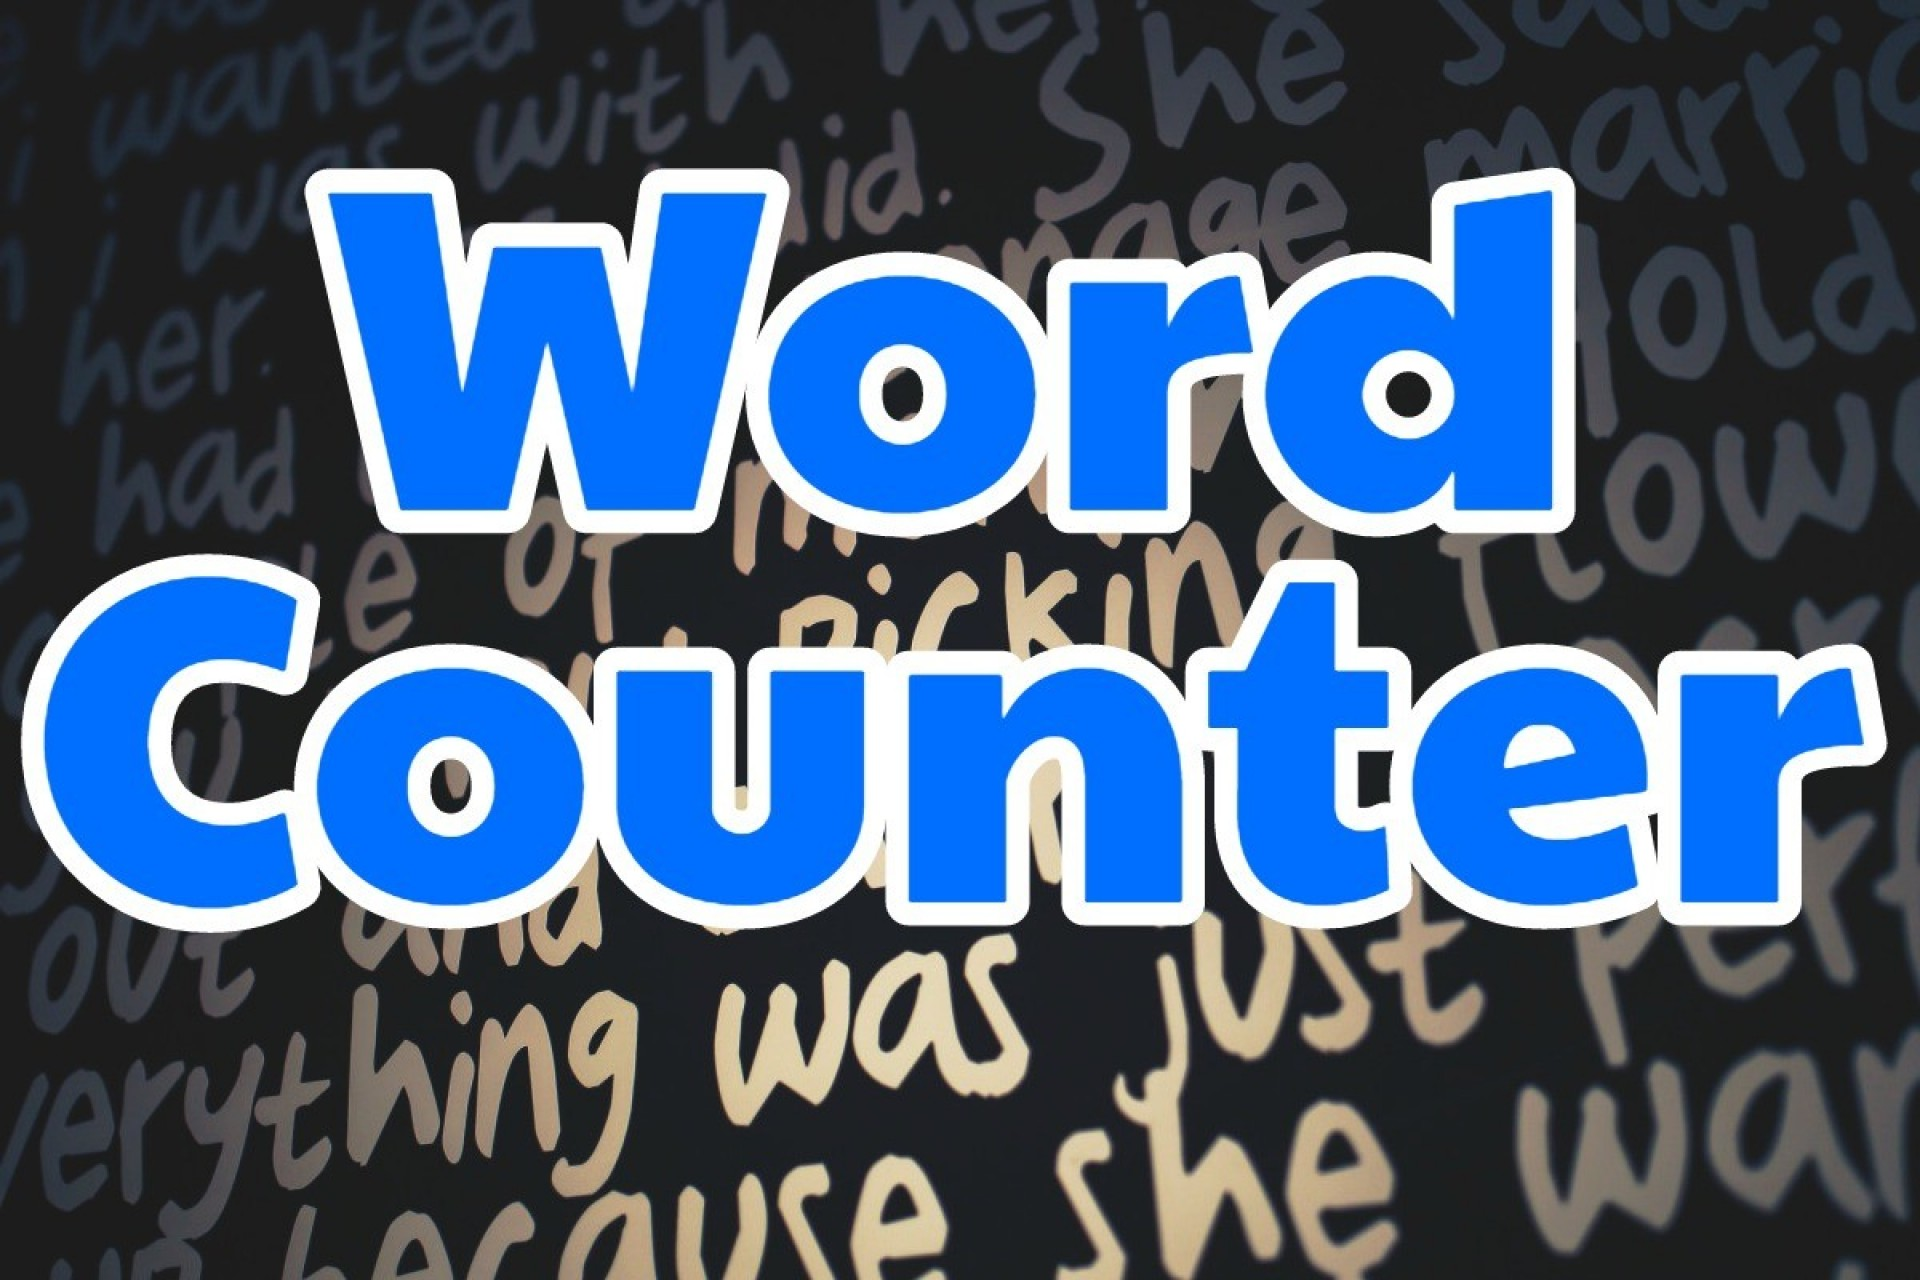 004 Word Counter For Essays Essay Incredible Limit College Counts 1920